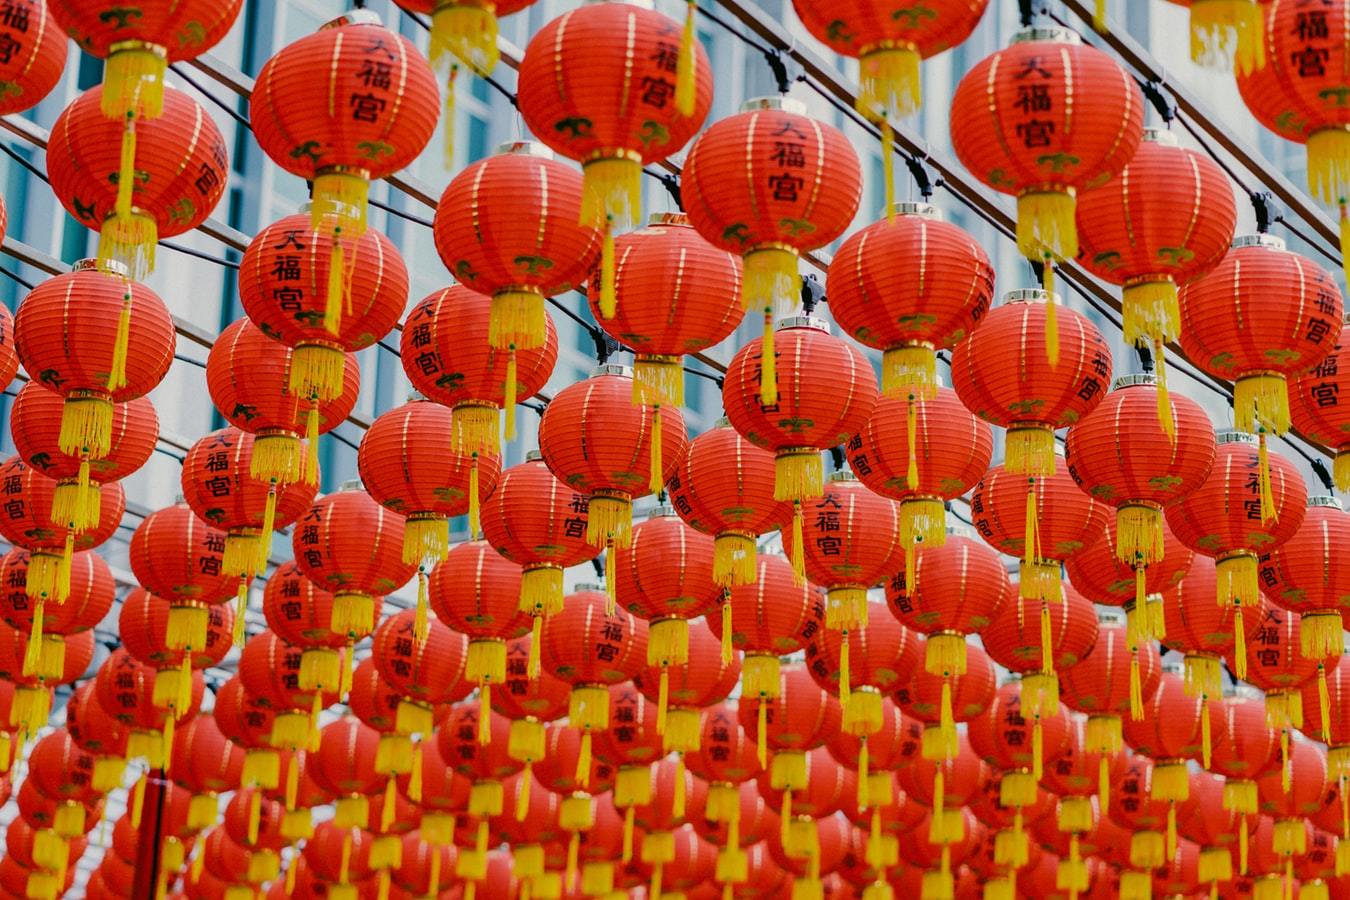 Chinese New Year 2020: How to Minimize the Impact on Your Supply Chain